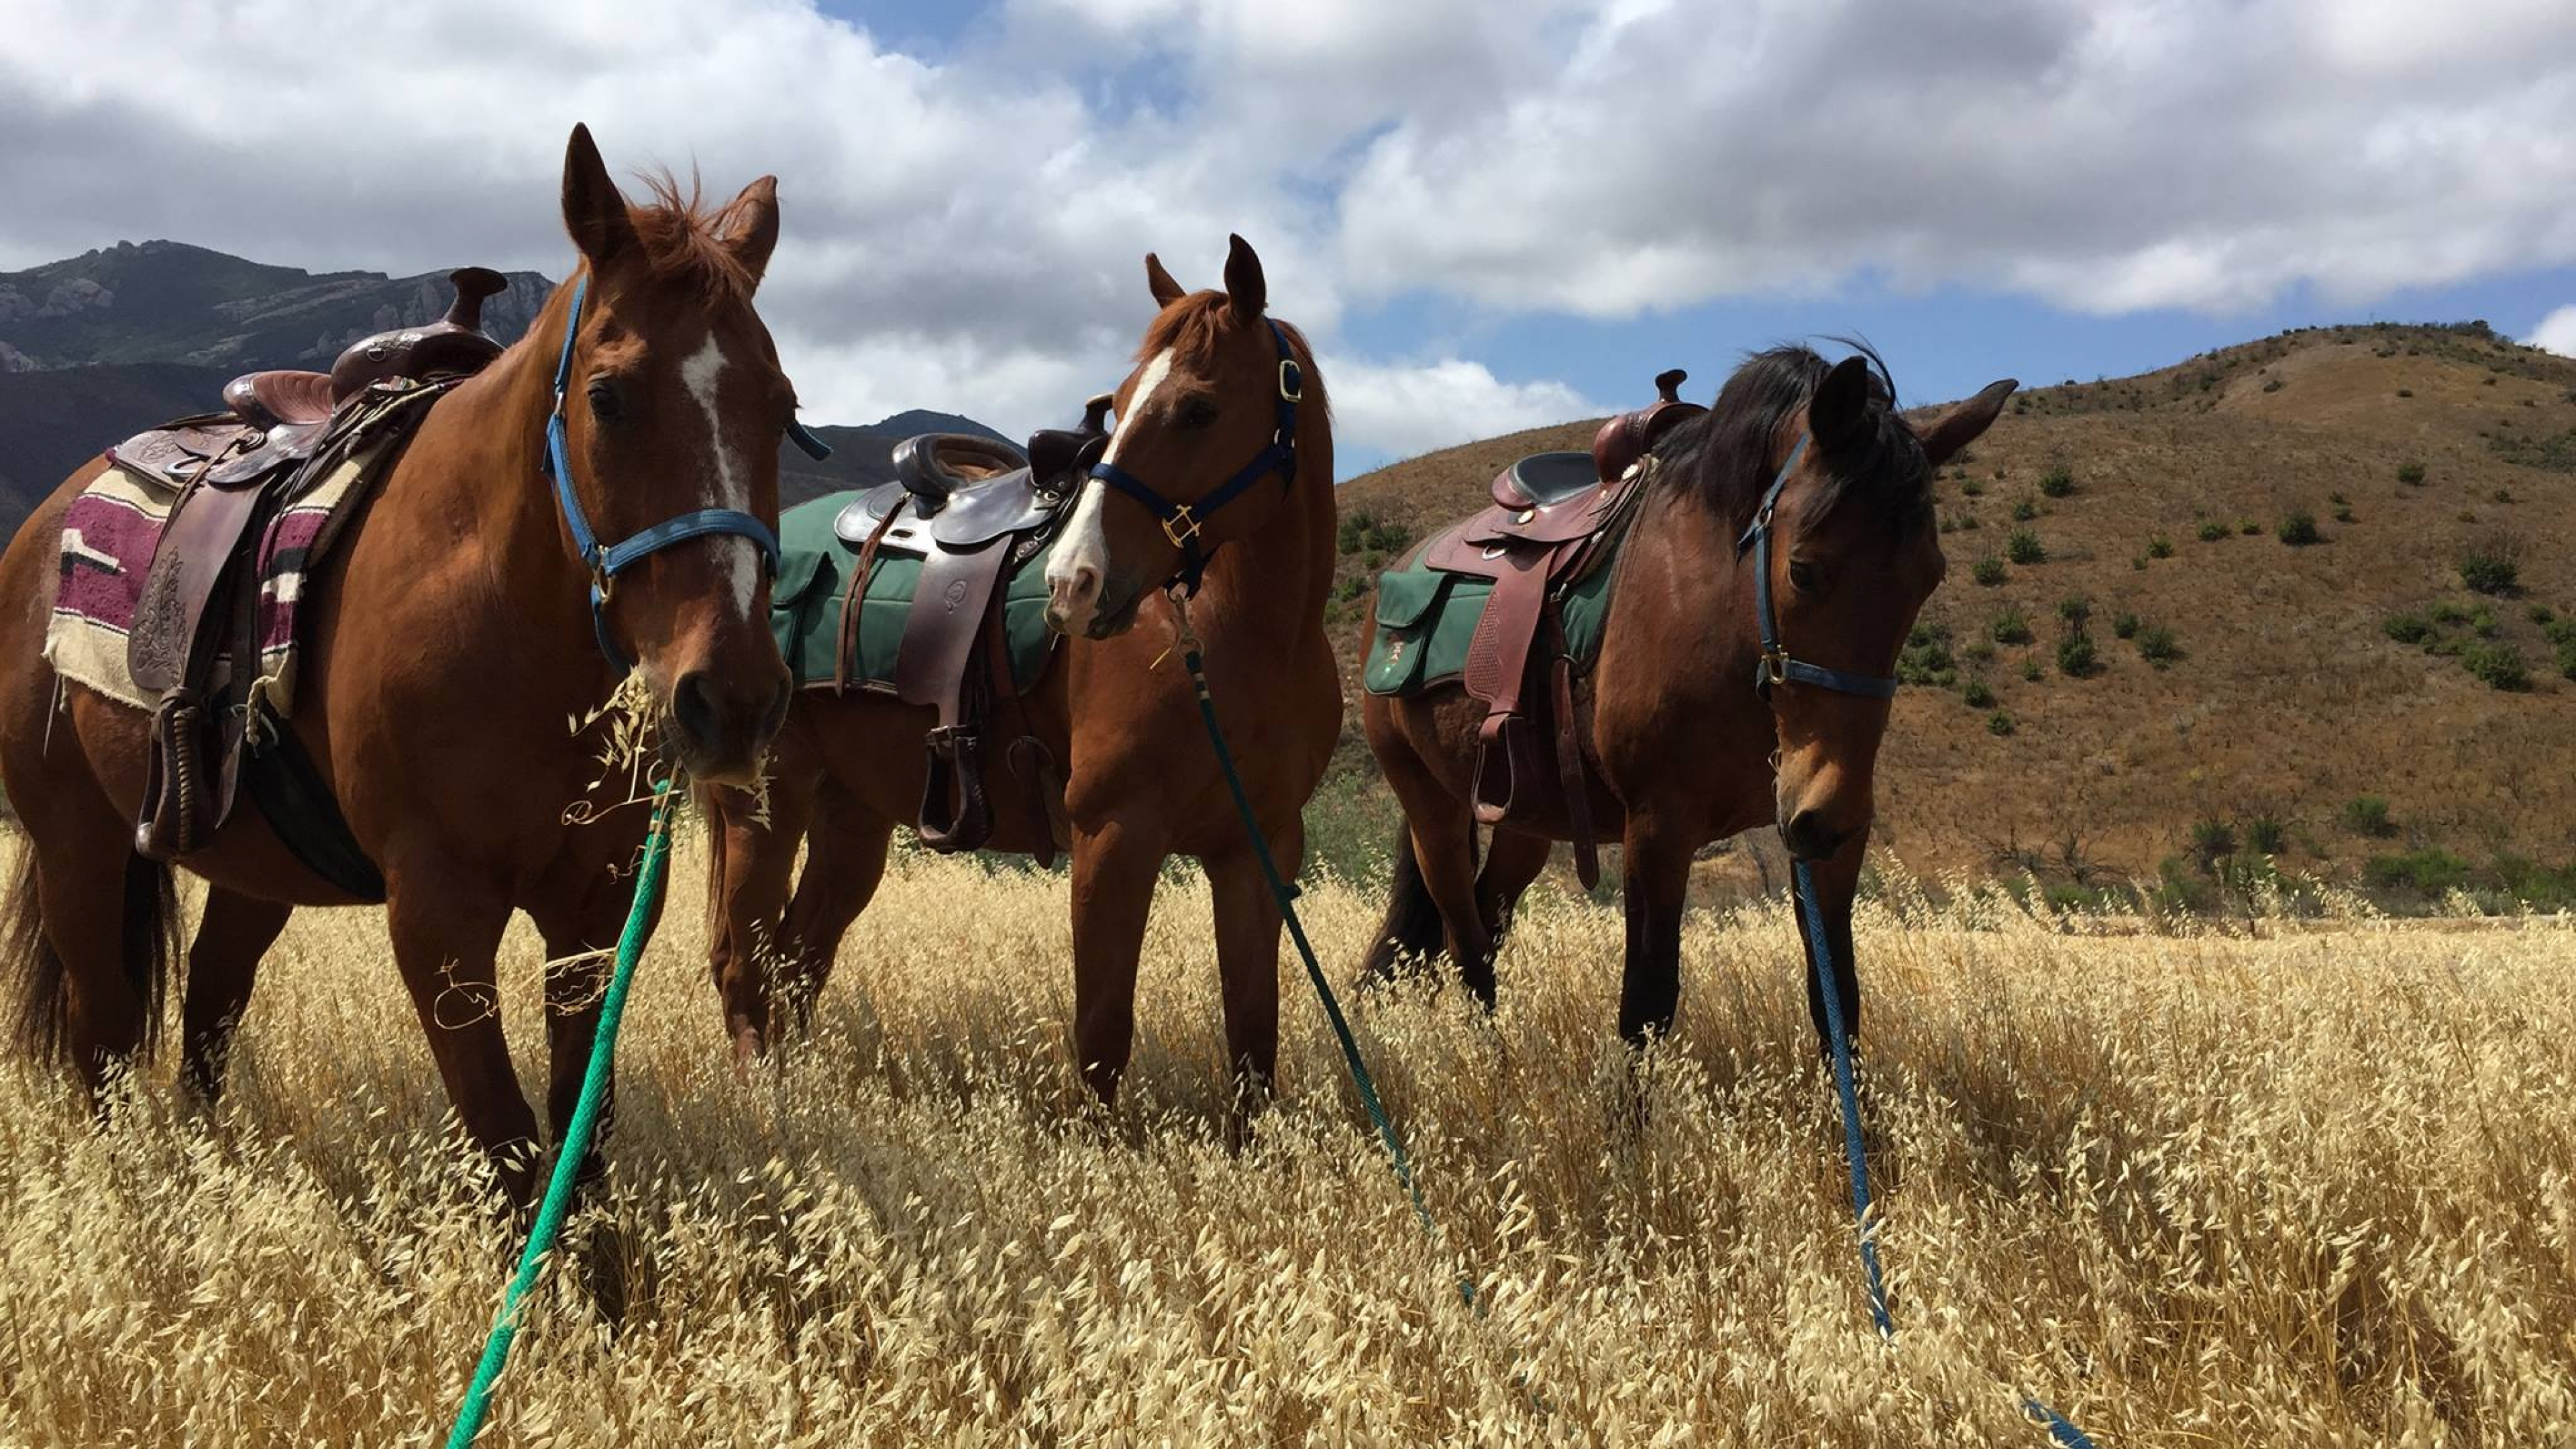 Three saddled brown horses standing in a golden field of grass at the Santa Monica Mountains National Recreation Area